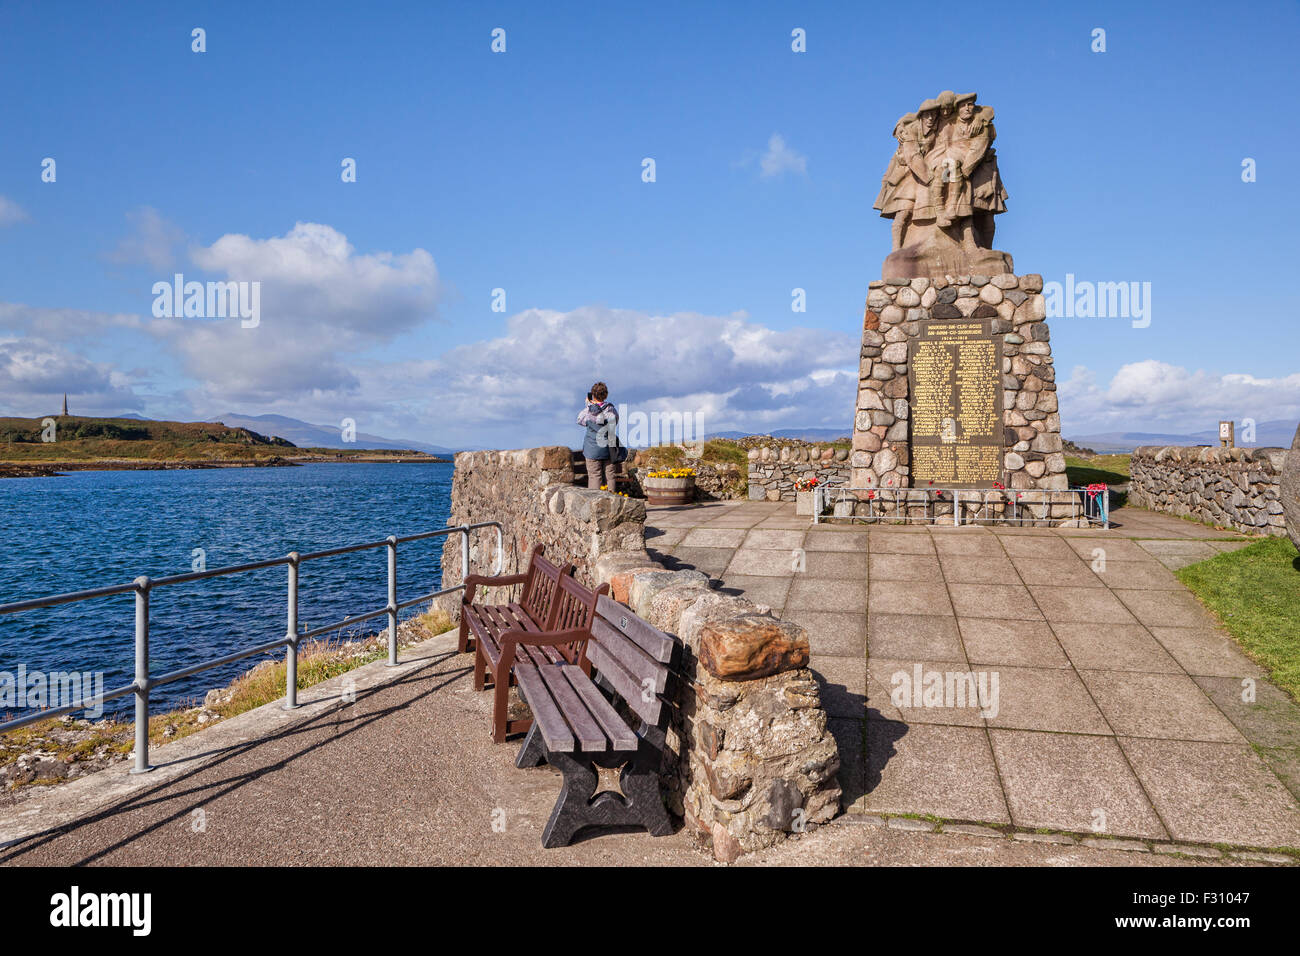 War memorial on the seafront at  Oban, Argyll and Bute, Scotland. - Stock Image